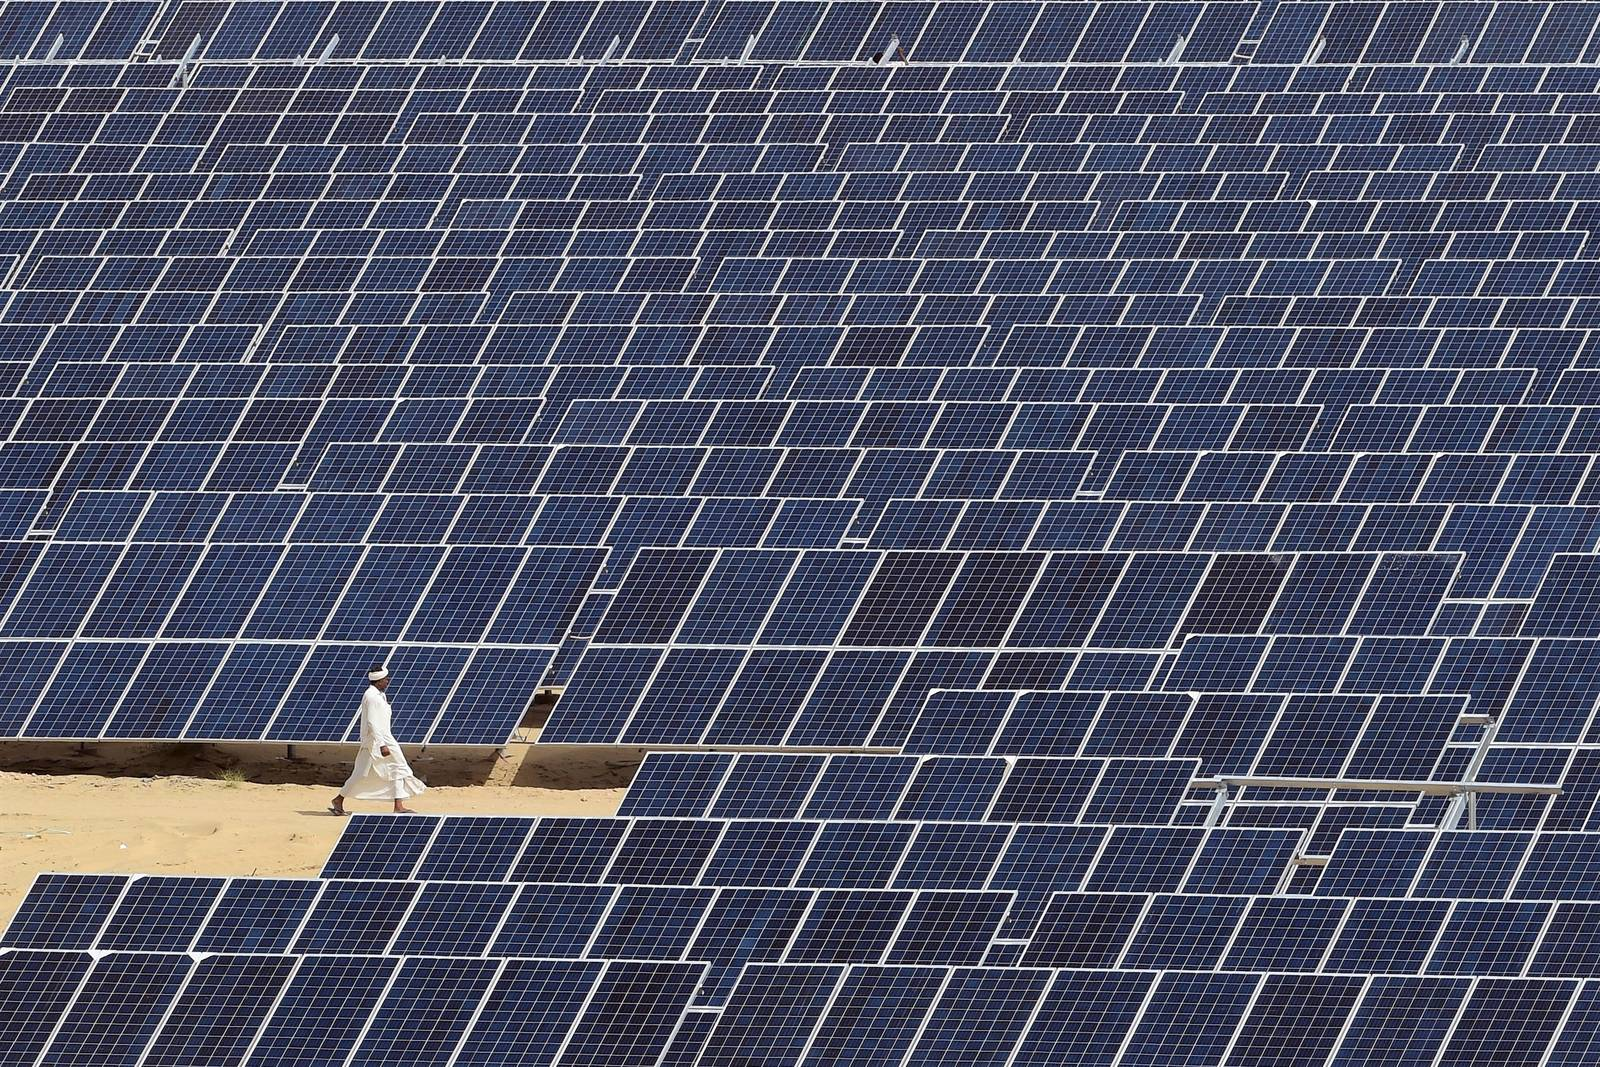 A sea of solar panels in a north Indian desert is part of the government's clean energy push. Credit: Money Sharma/AFP/Getty Images